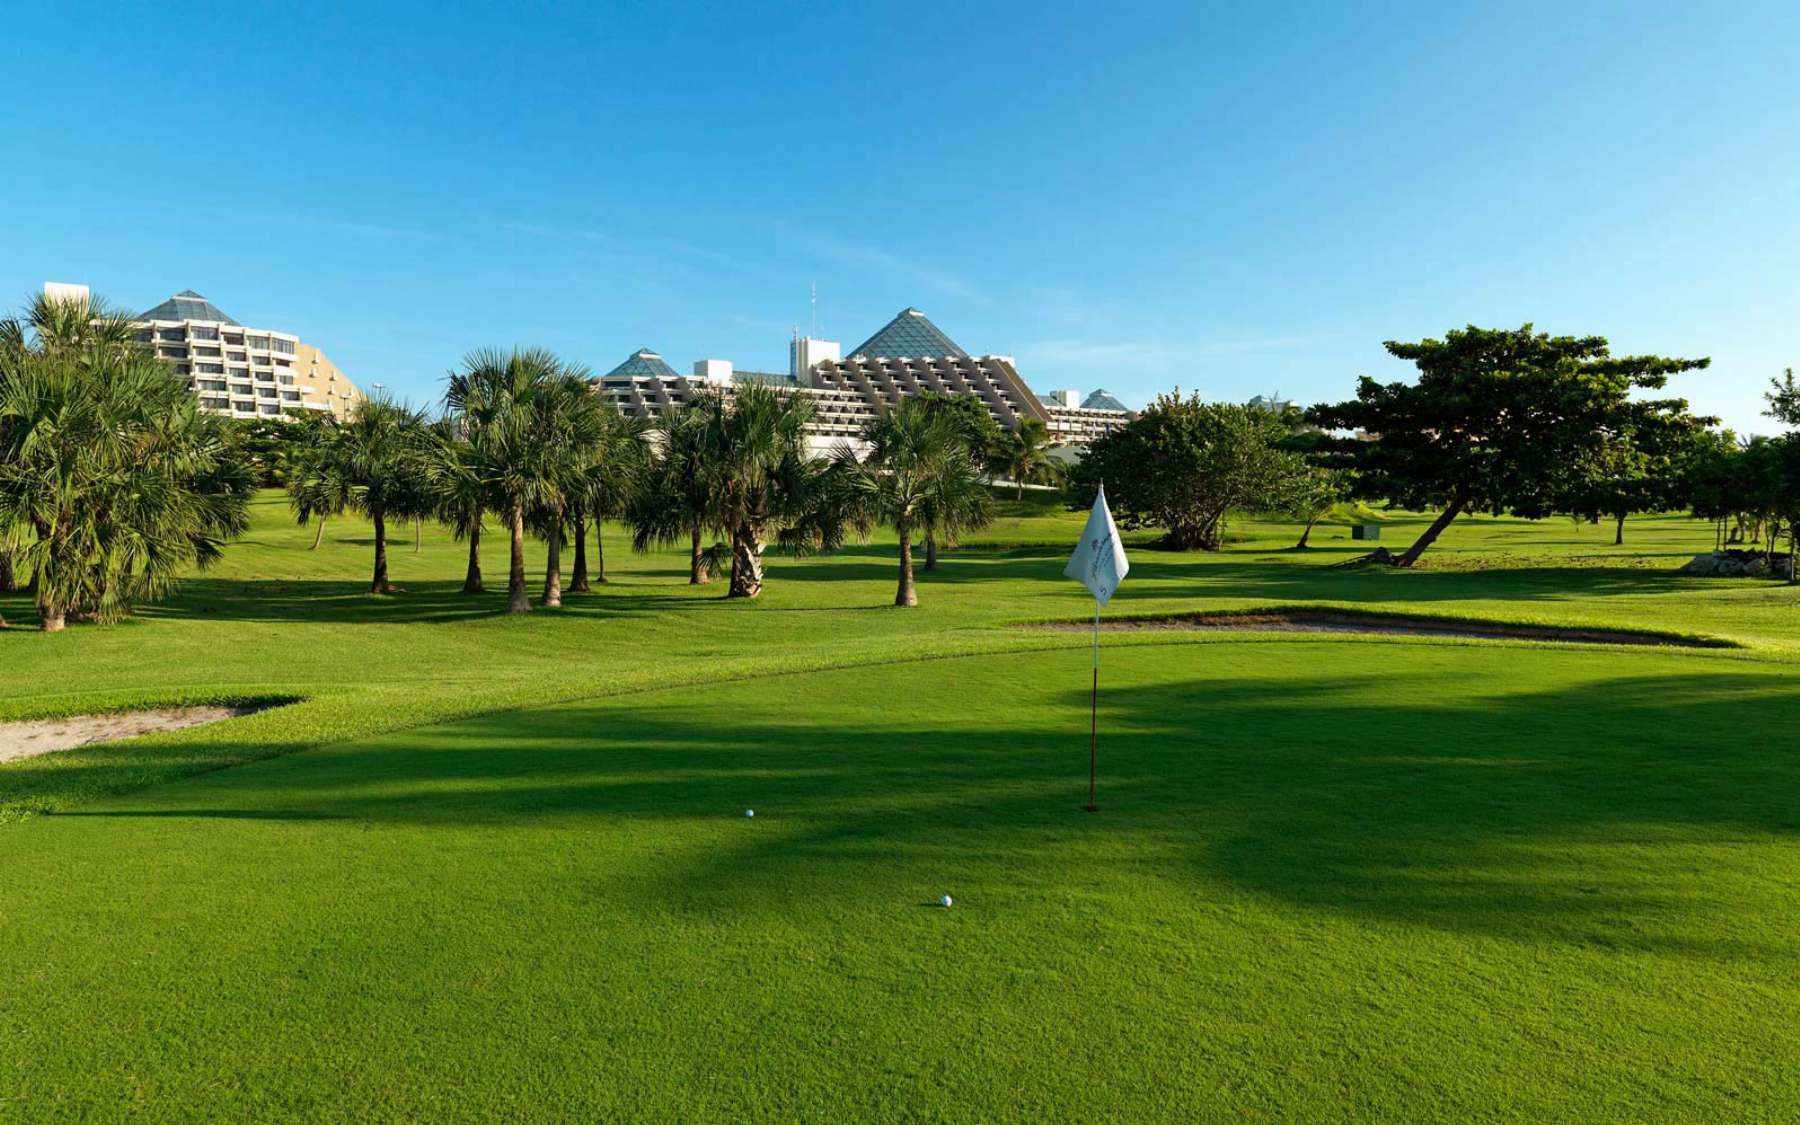 Golf Course at Paradisus Cancun